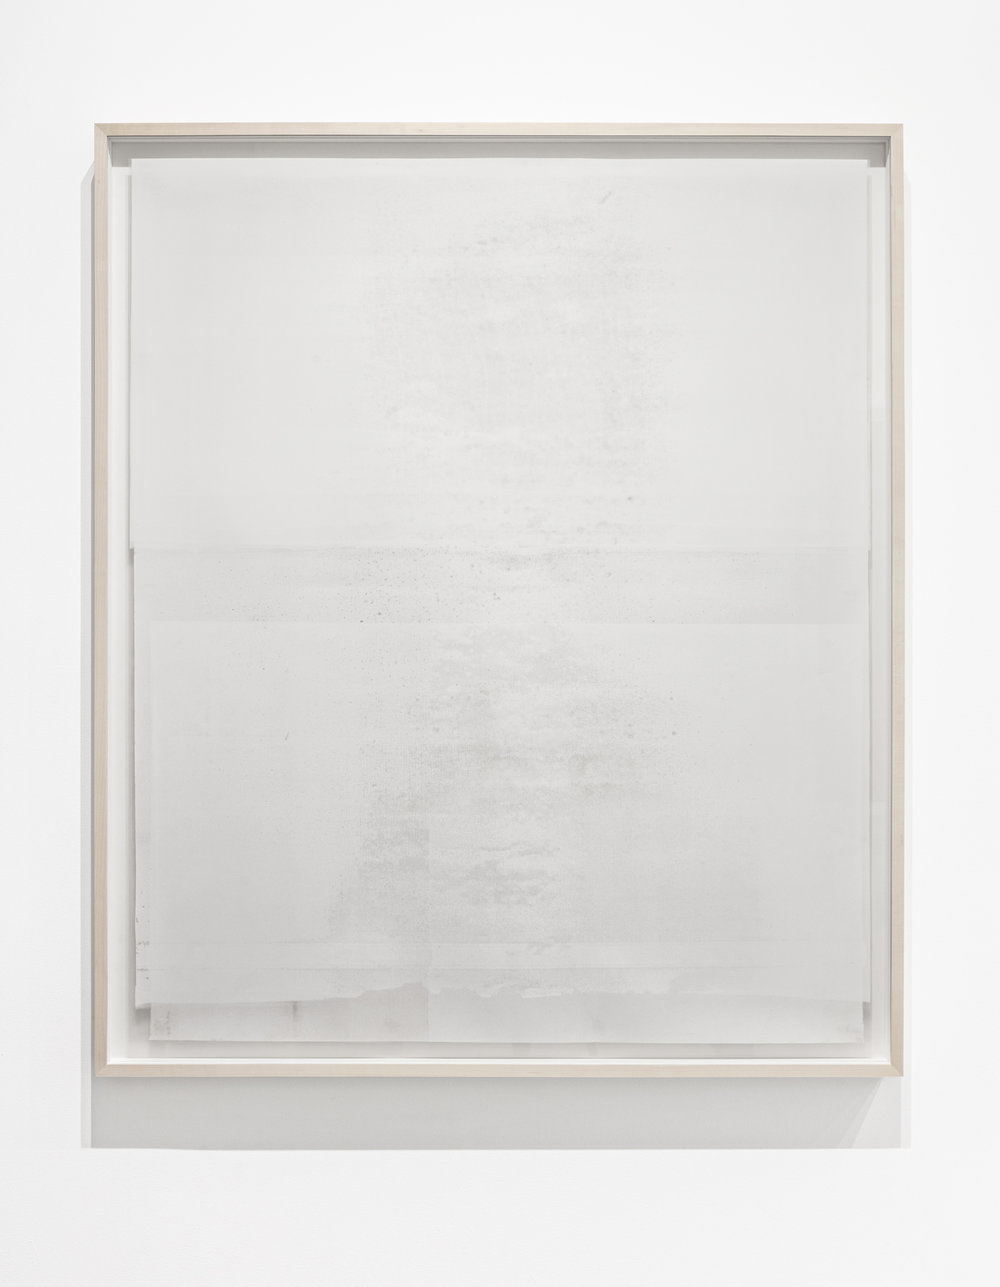 Untitled  ( white (square)  from the series  Impermanent Horizon ), 2016, 2 layers, oil based paint (white) on clouded mylar hinged on plexi set in front of acrylic (light grey) on mylar, 46 x 39 inches